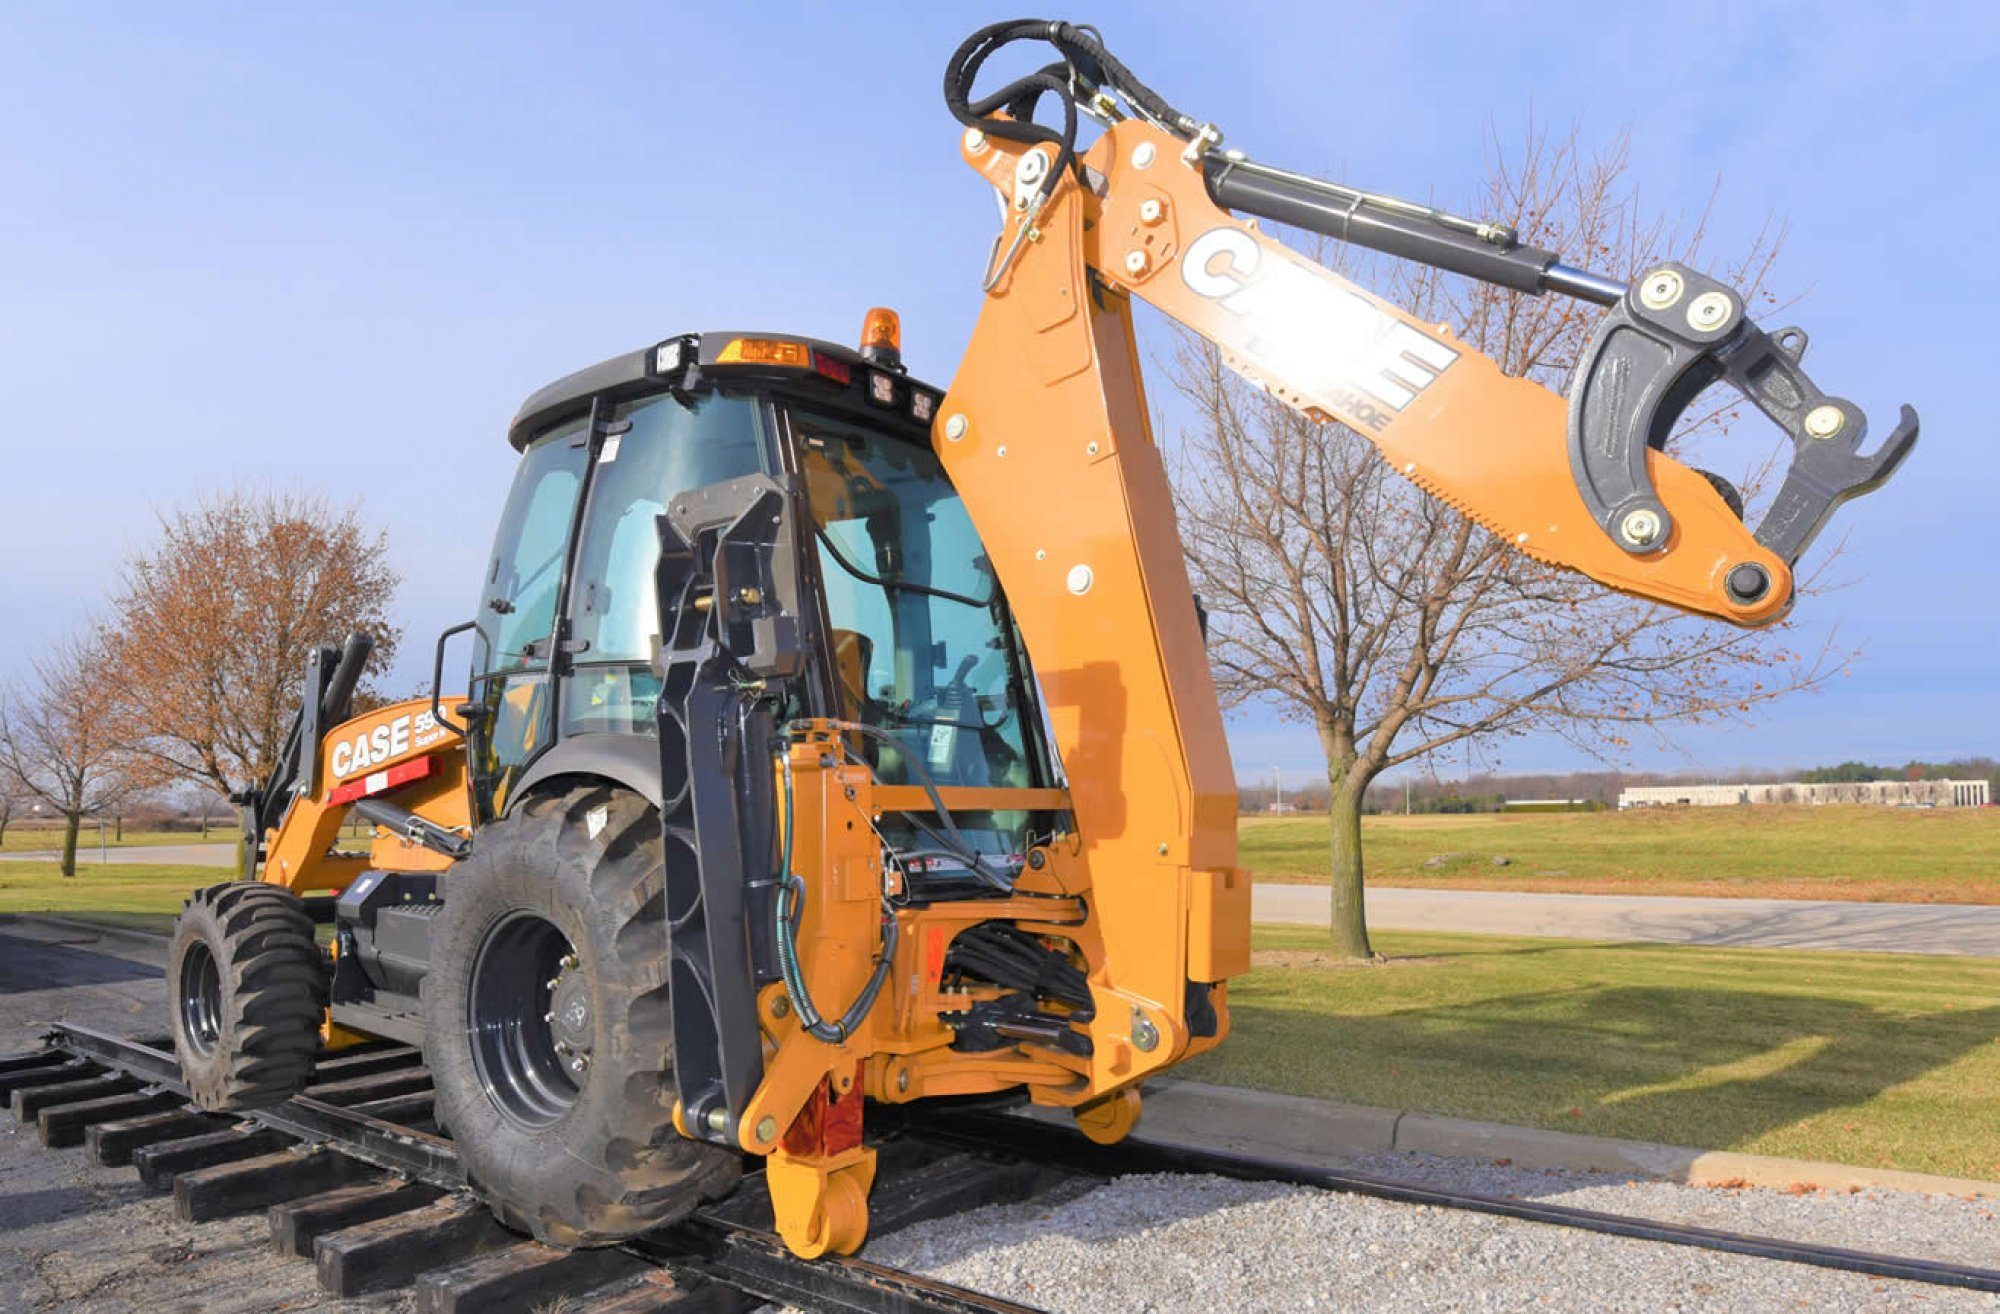 Backhoe Loader - Rail Gear with Wing Down Outriggers